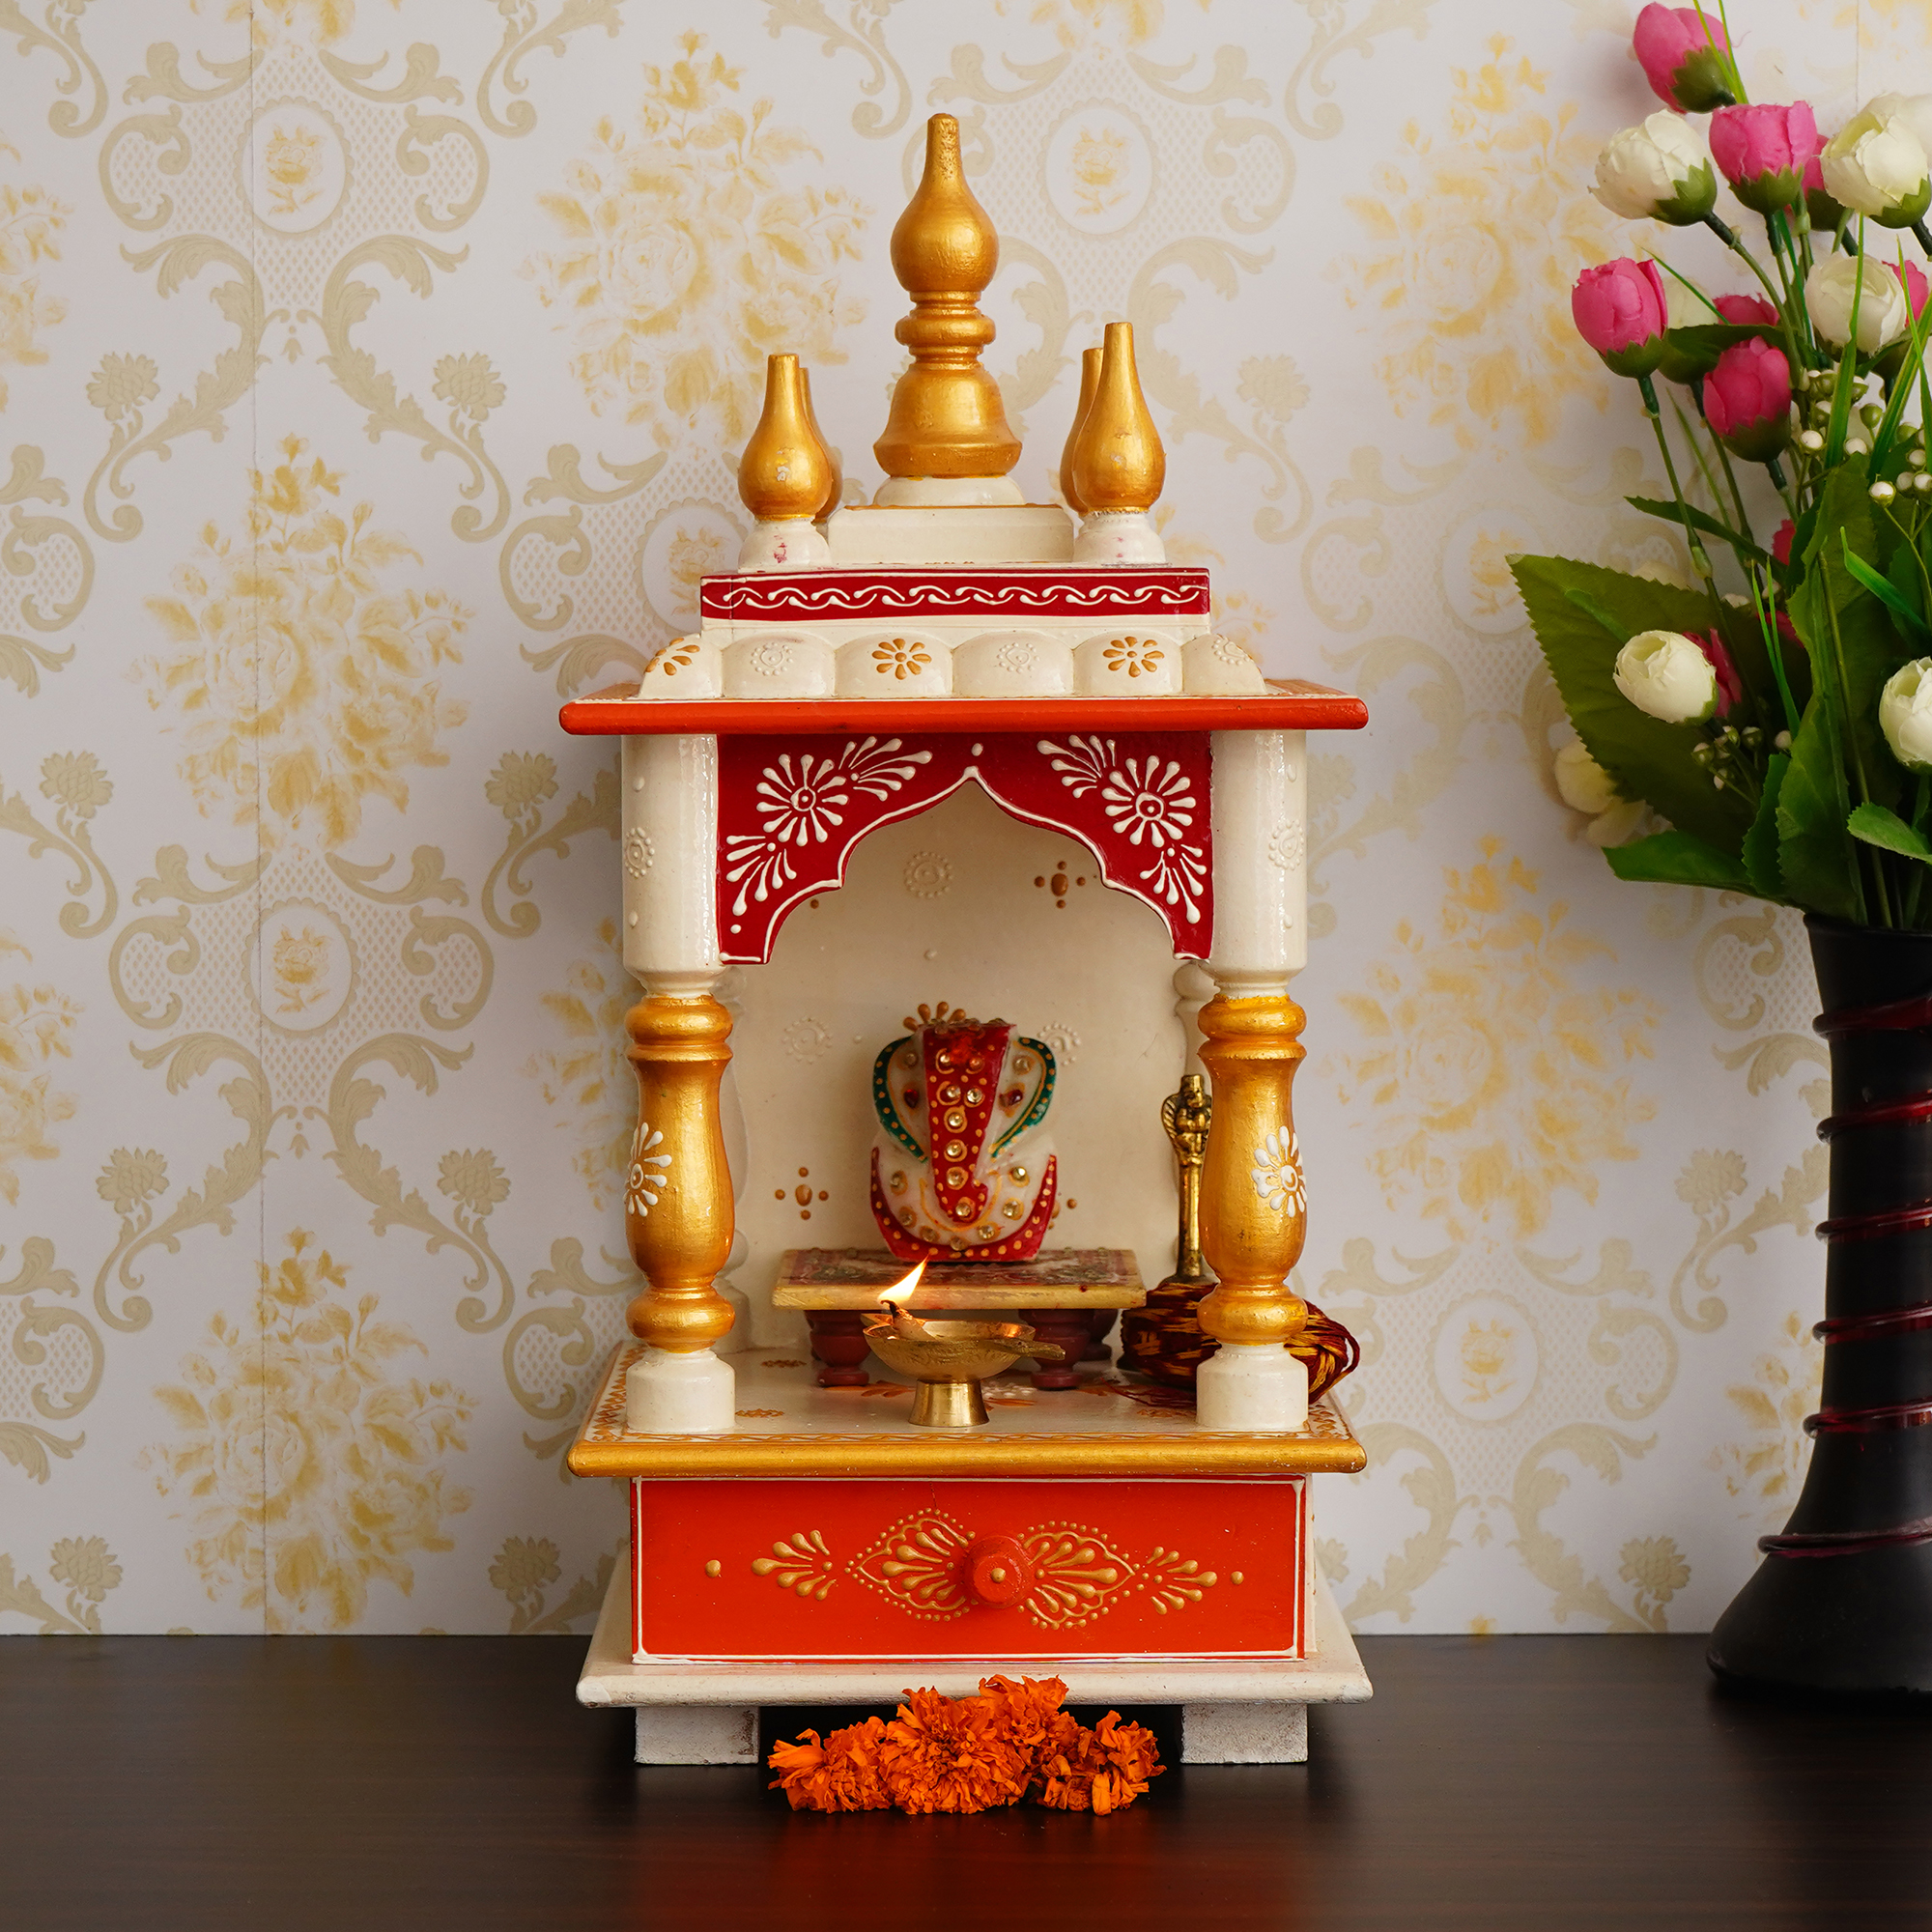 White, Red and Golden Mango Wood Pooja Temple/Mandir with Storage Option Indian Home Decor